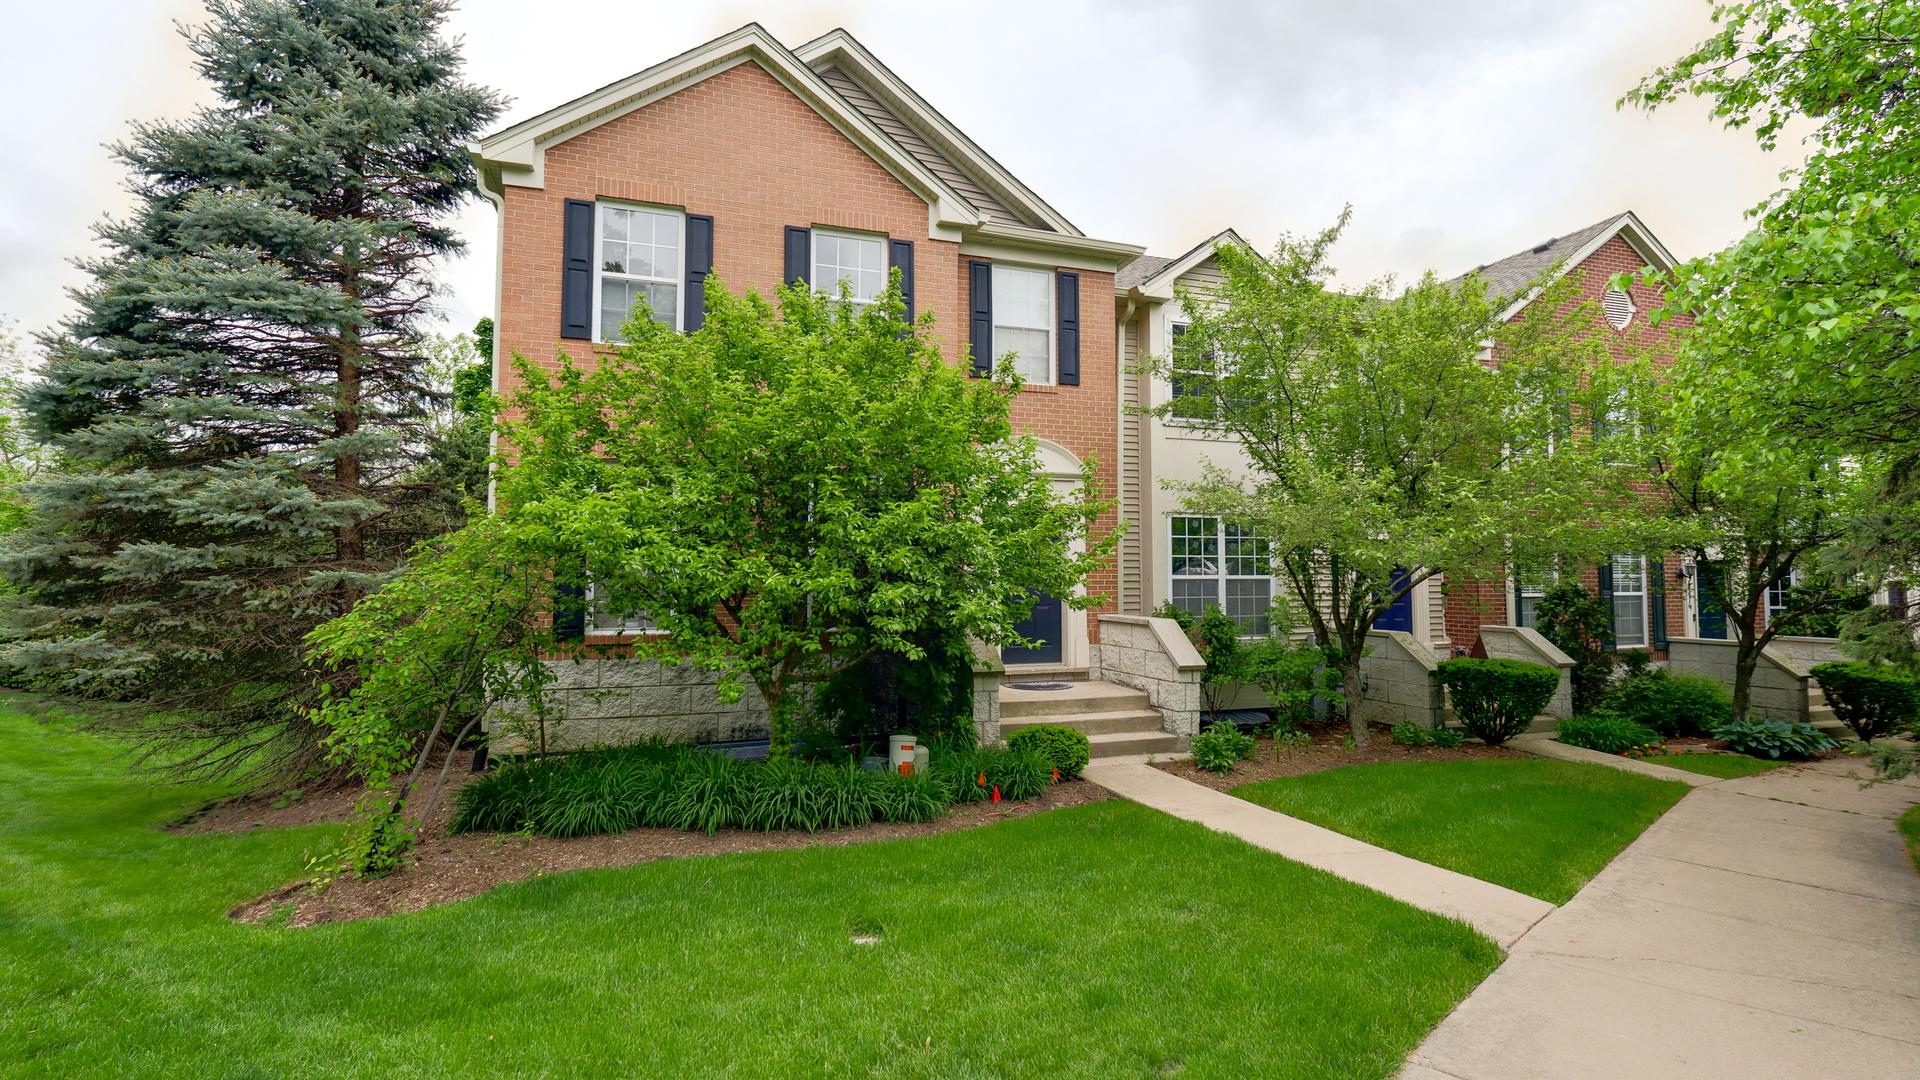 110 Willow Boulevard, Willow Springs, IL 60480 - #: 11090601